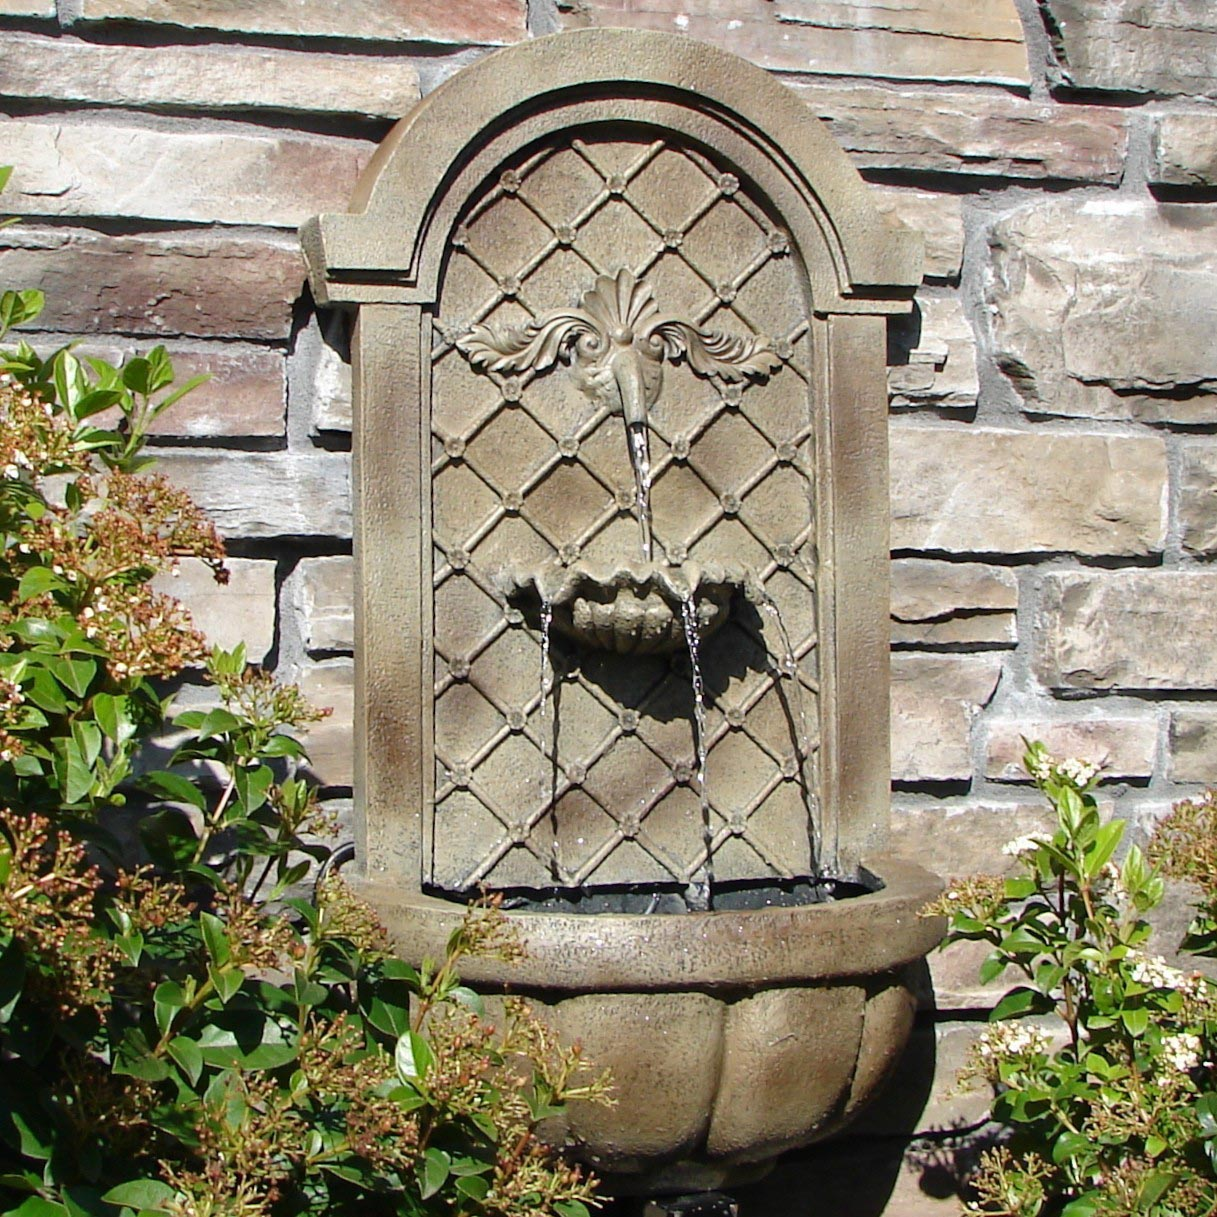 Garden wall fountains fountain design ideas for Outdoor wall fountains